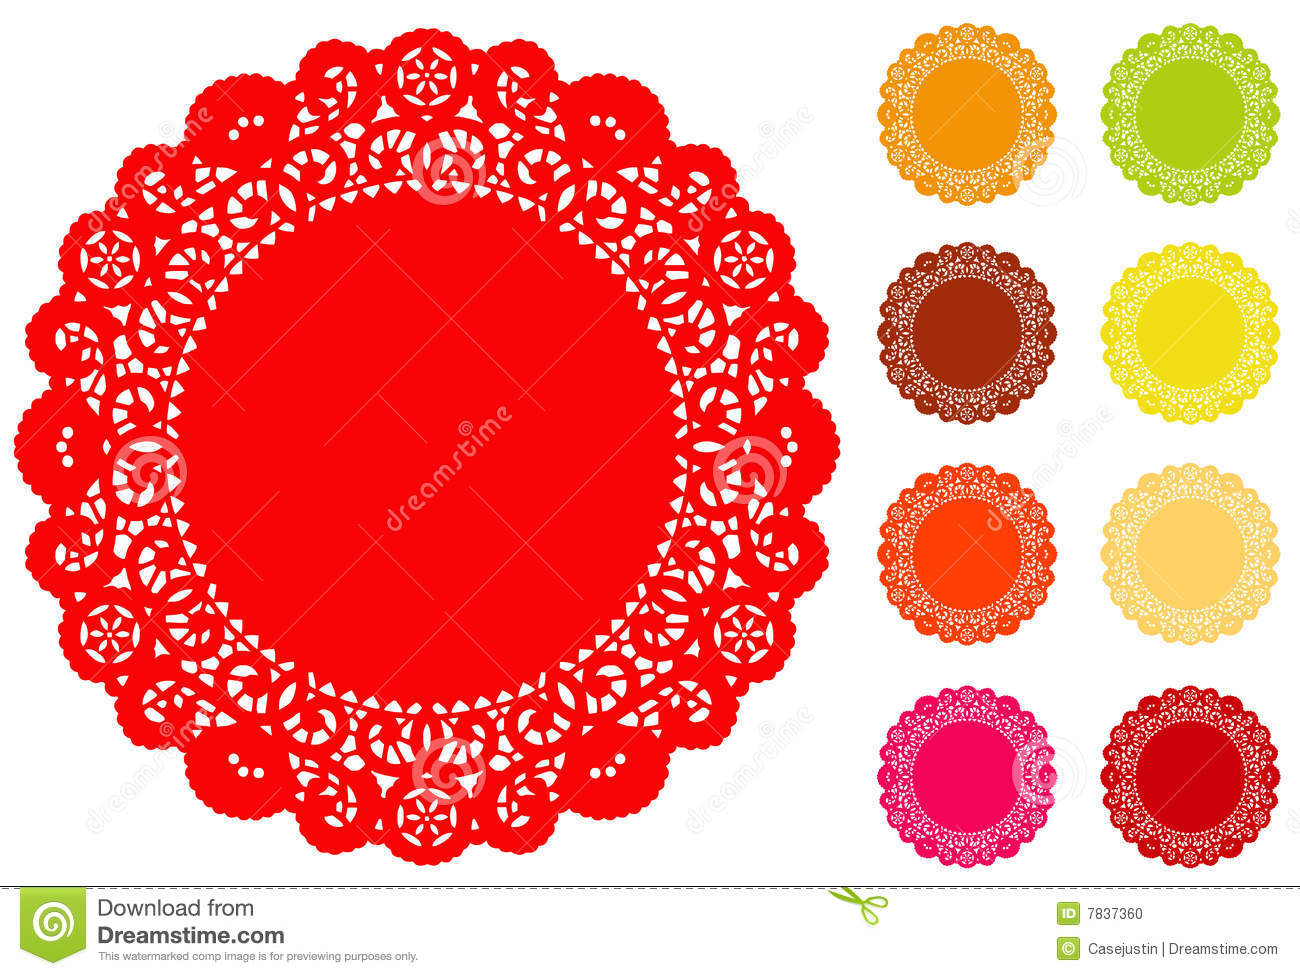 Round Lace Round Doily 9 Bright Colors Stock Photo